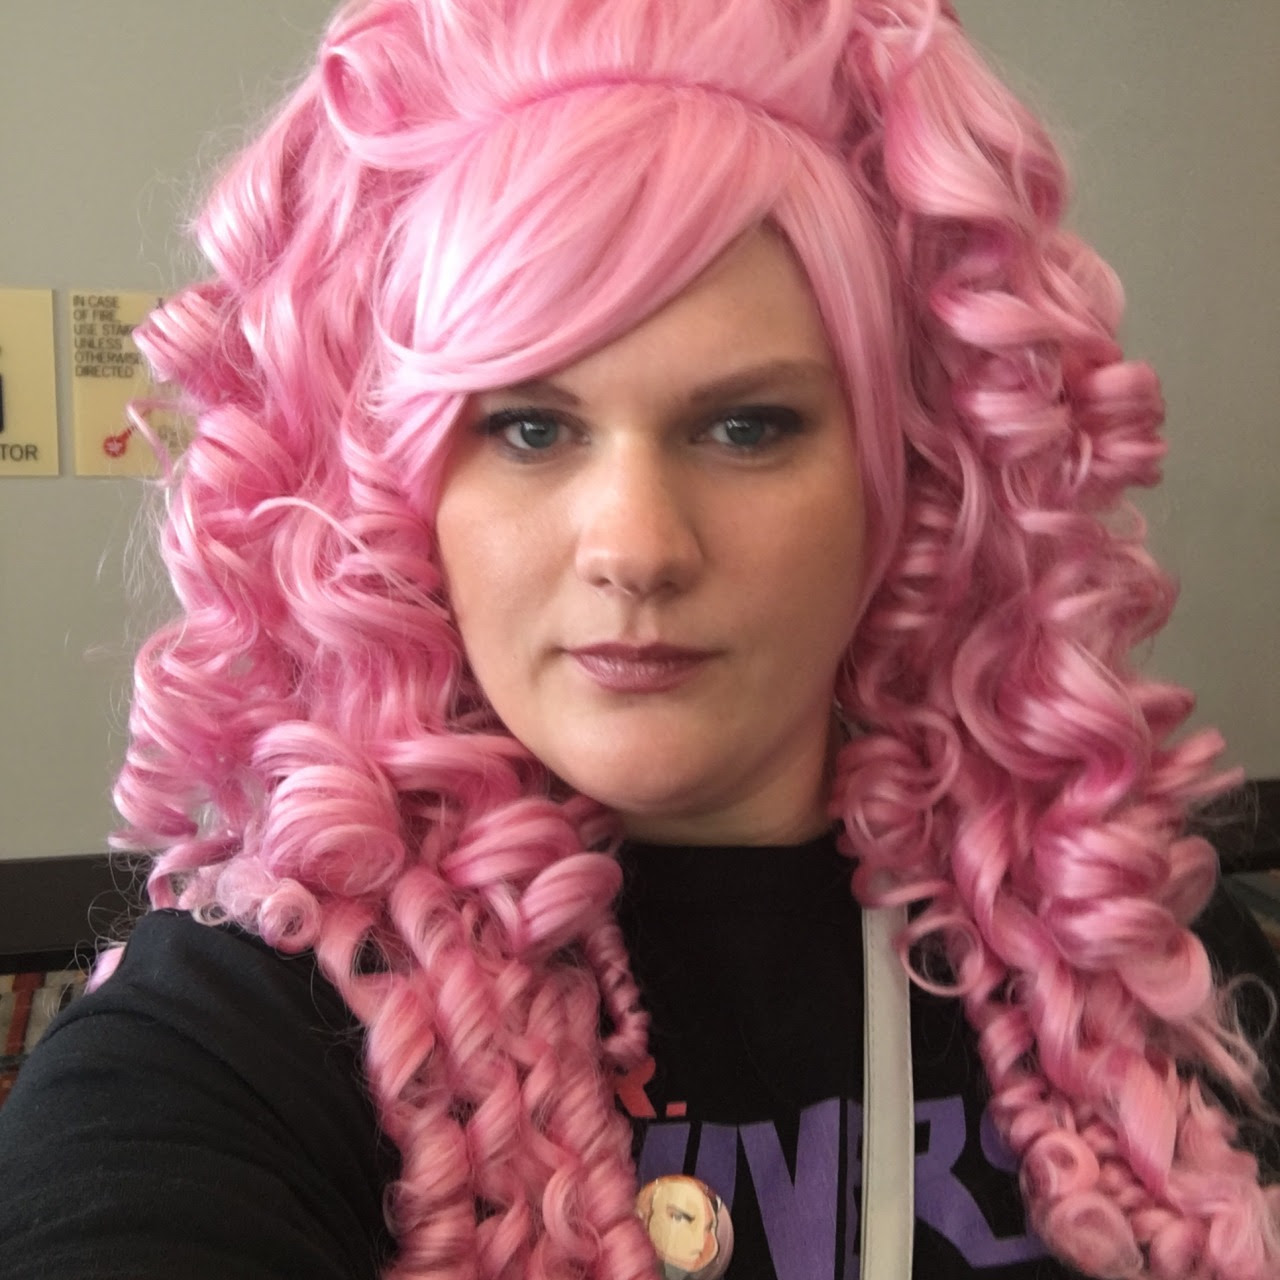 I went as casual Rose Quartz because I messed up the gown. :( but I had tons of fun and I'm so pleased with the wig. I plan to add even more hair to it.